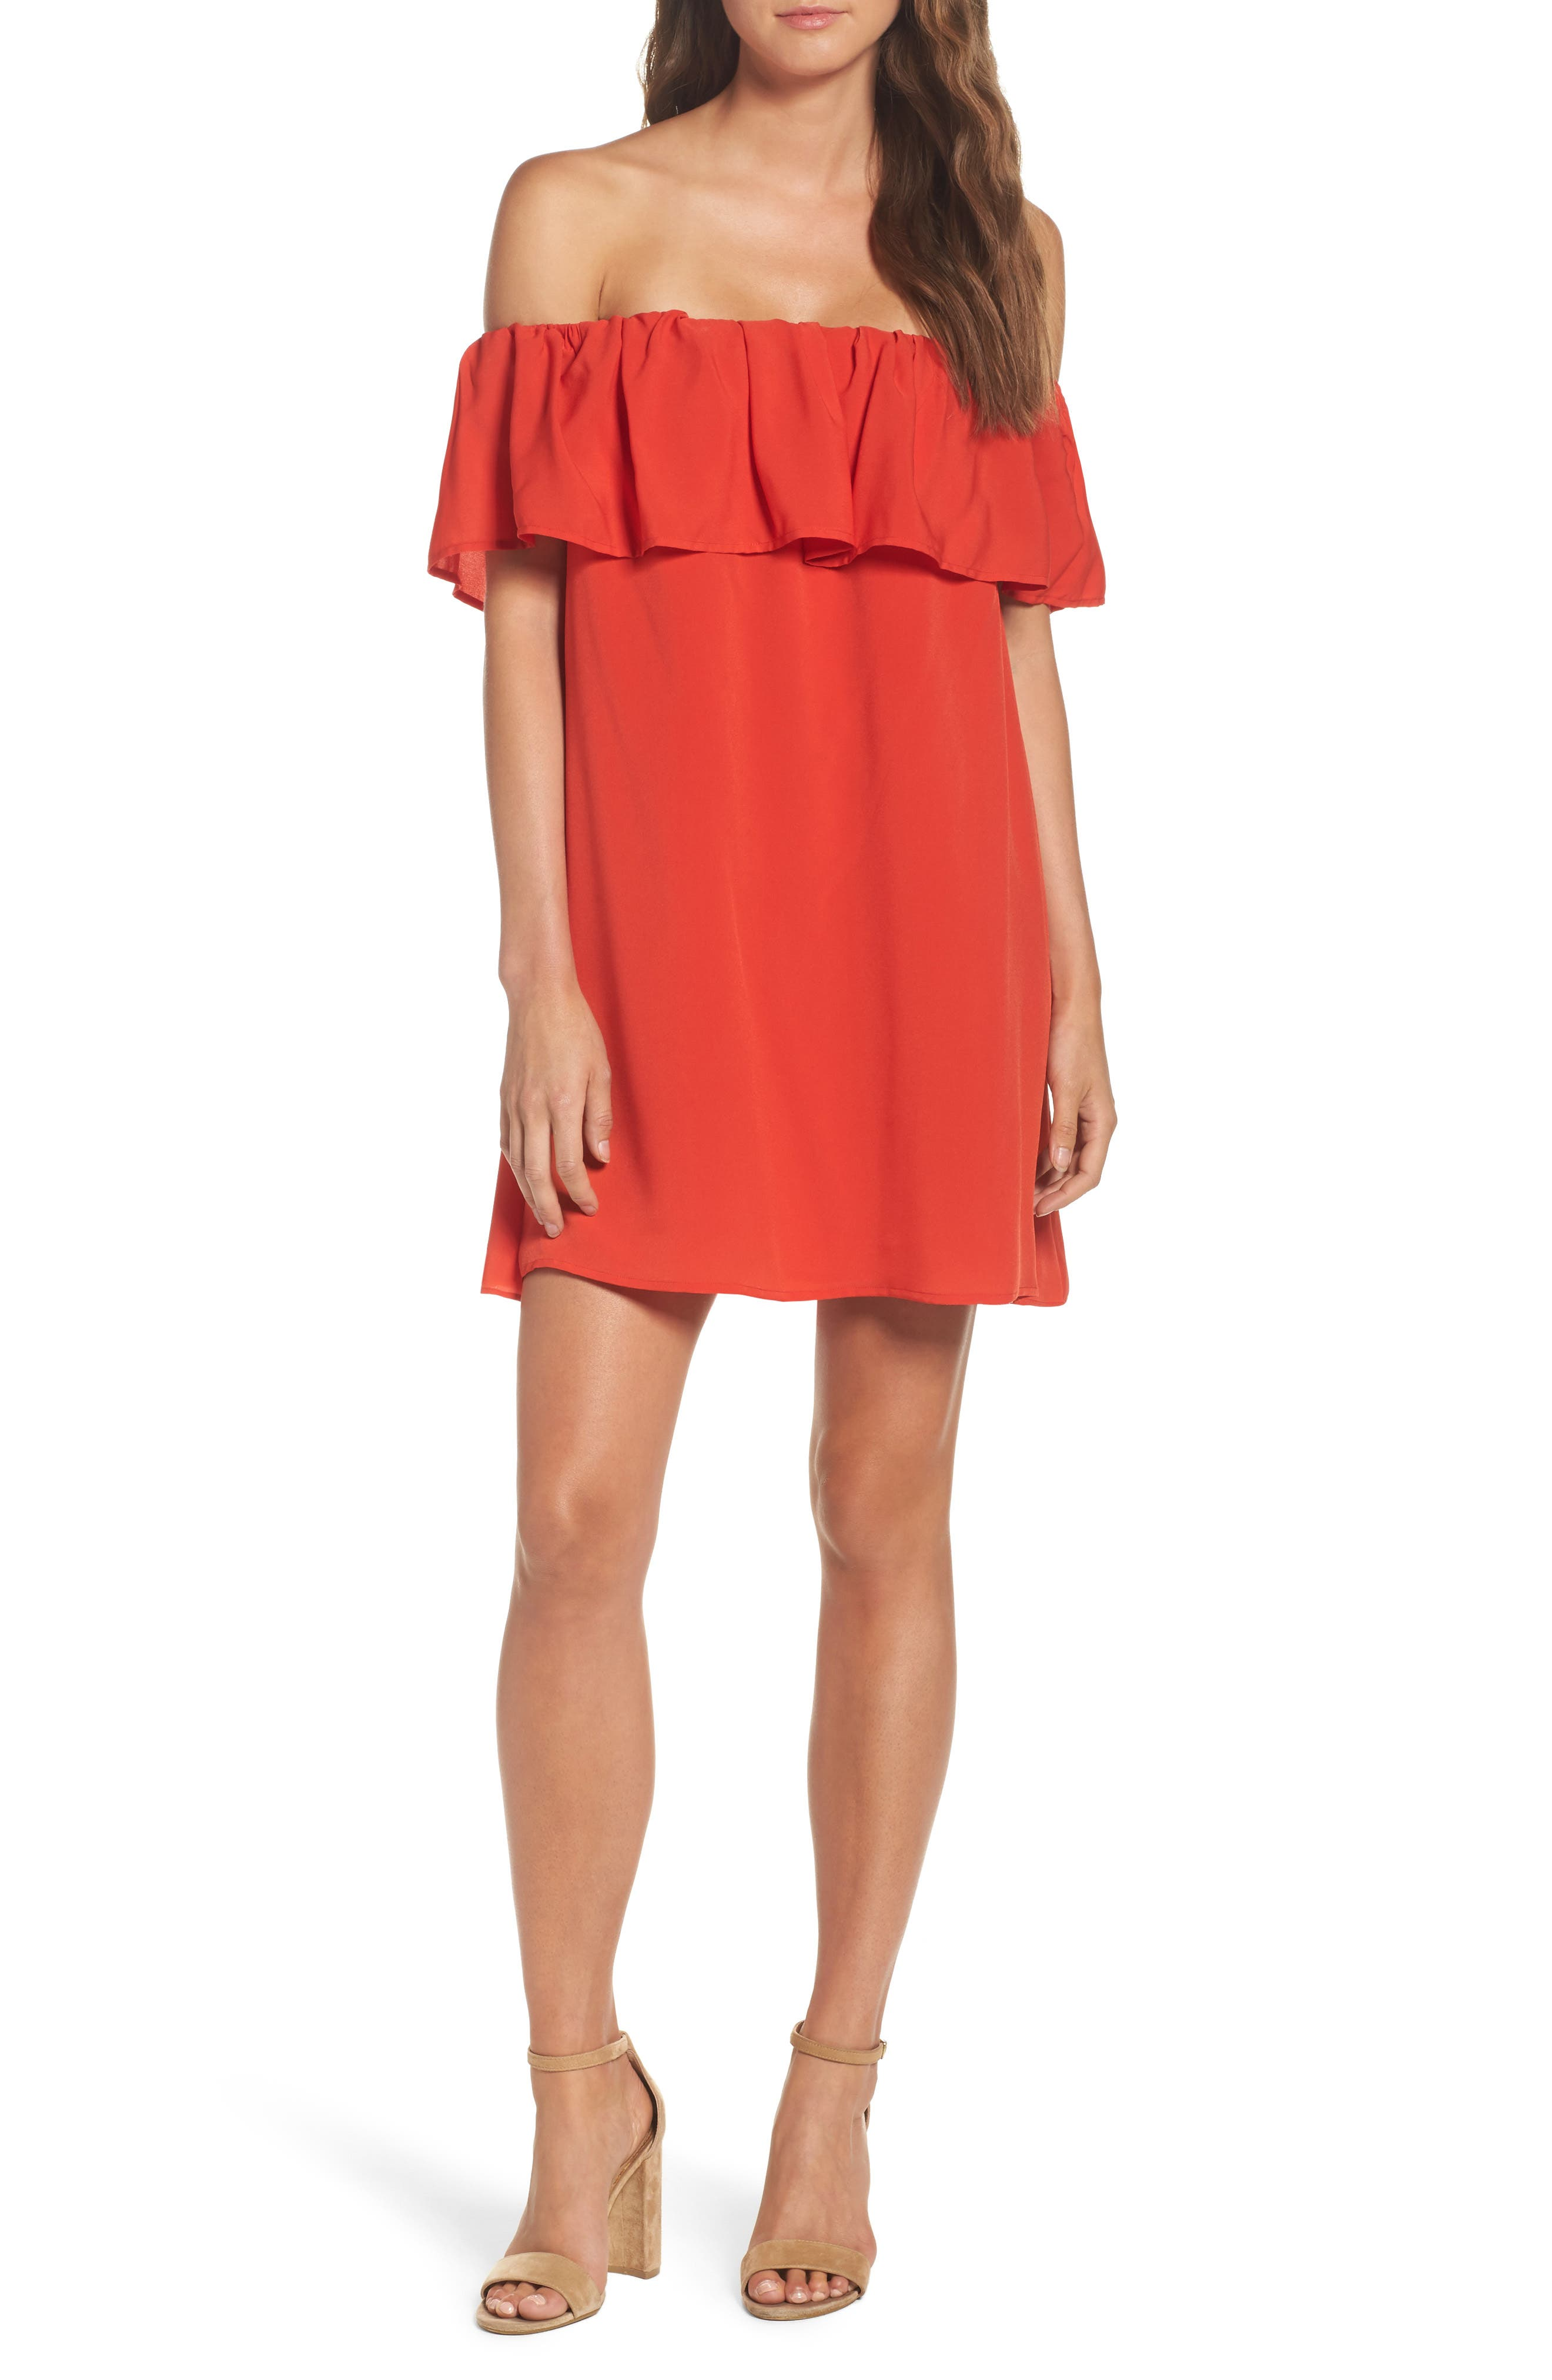 Polly Plains Dress,                         Main,                         color, Margo Red